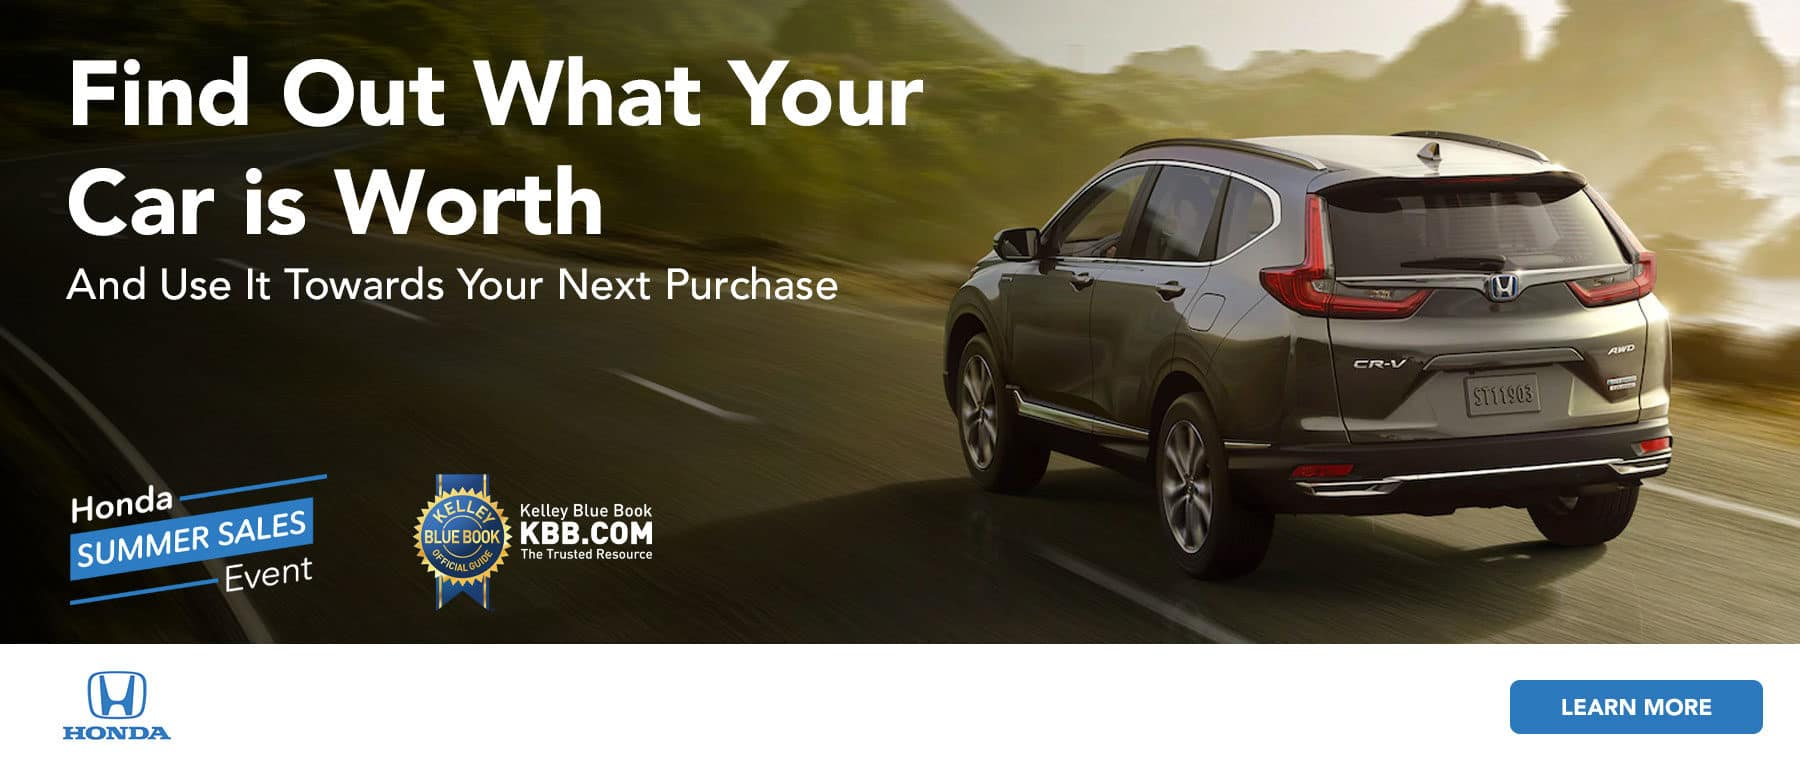 Find Out What Your Car is Worth, And Use it Towards Your Next Purchase